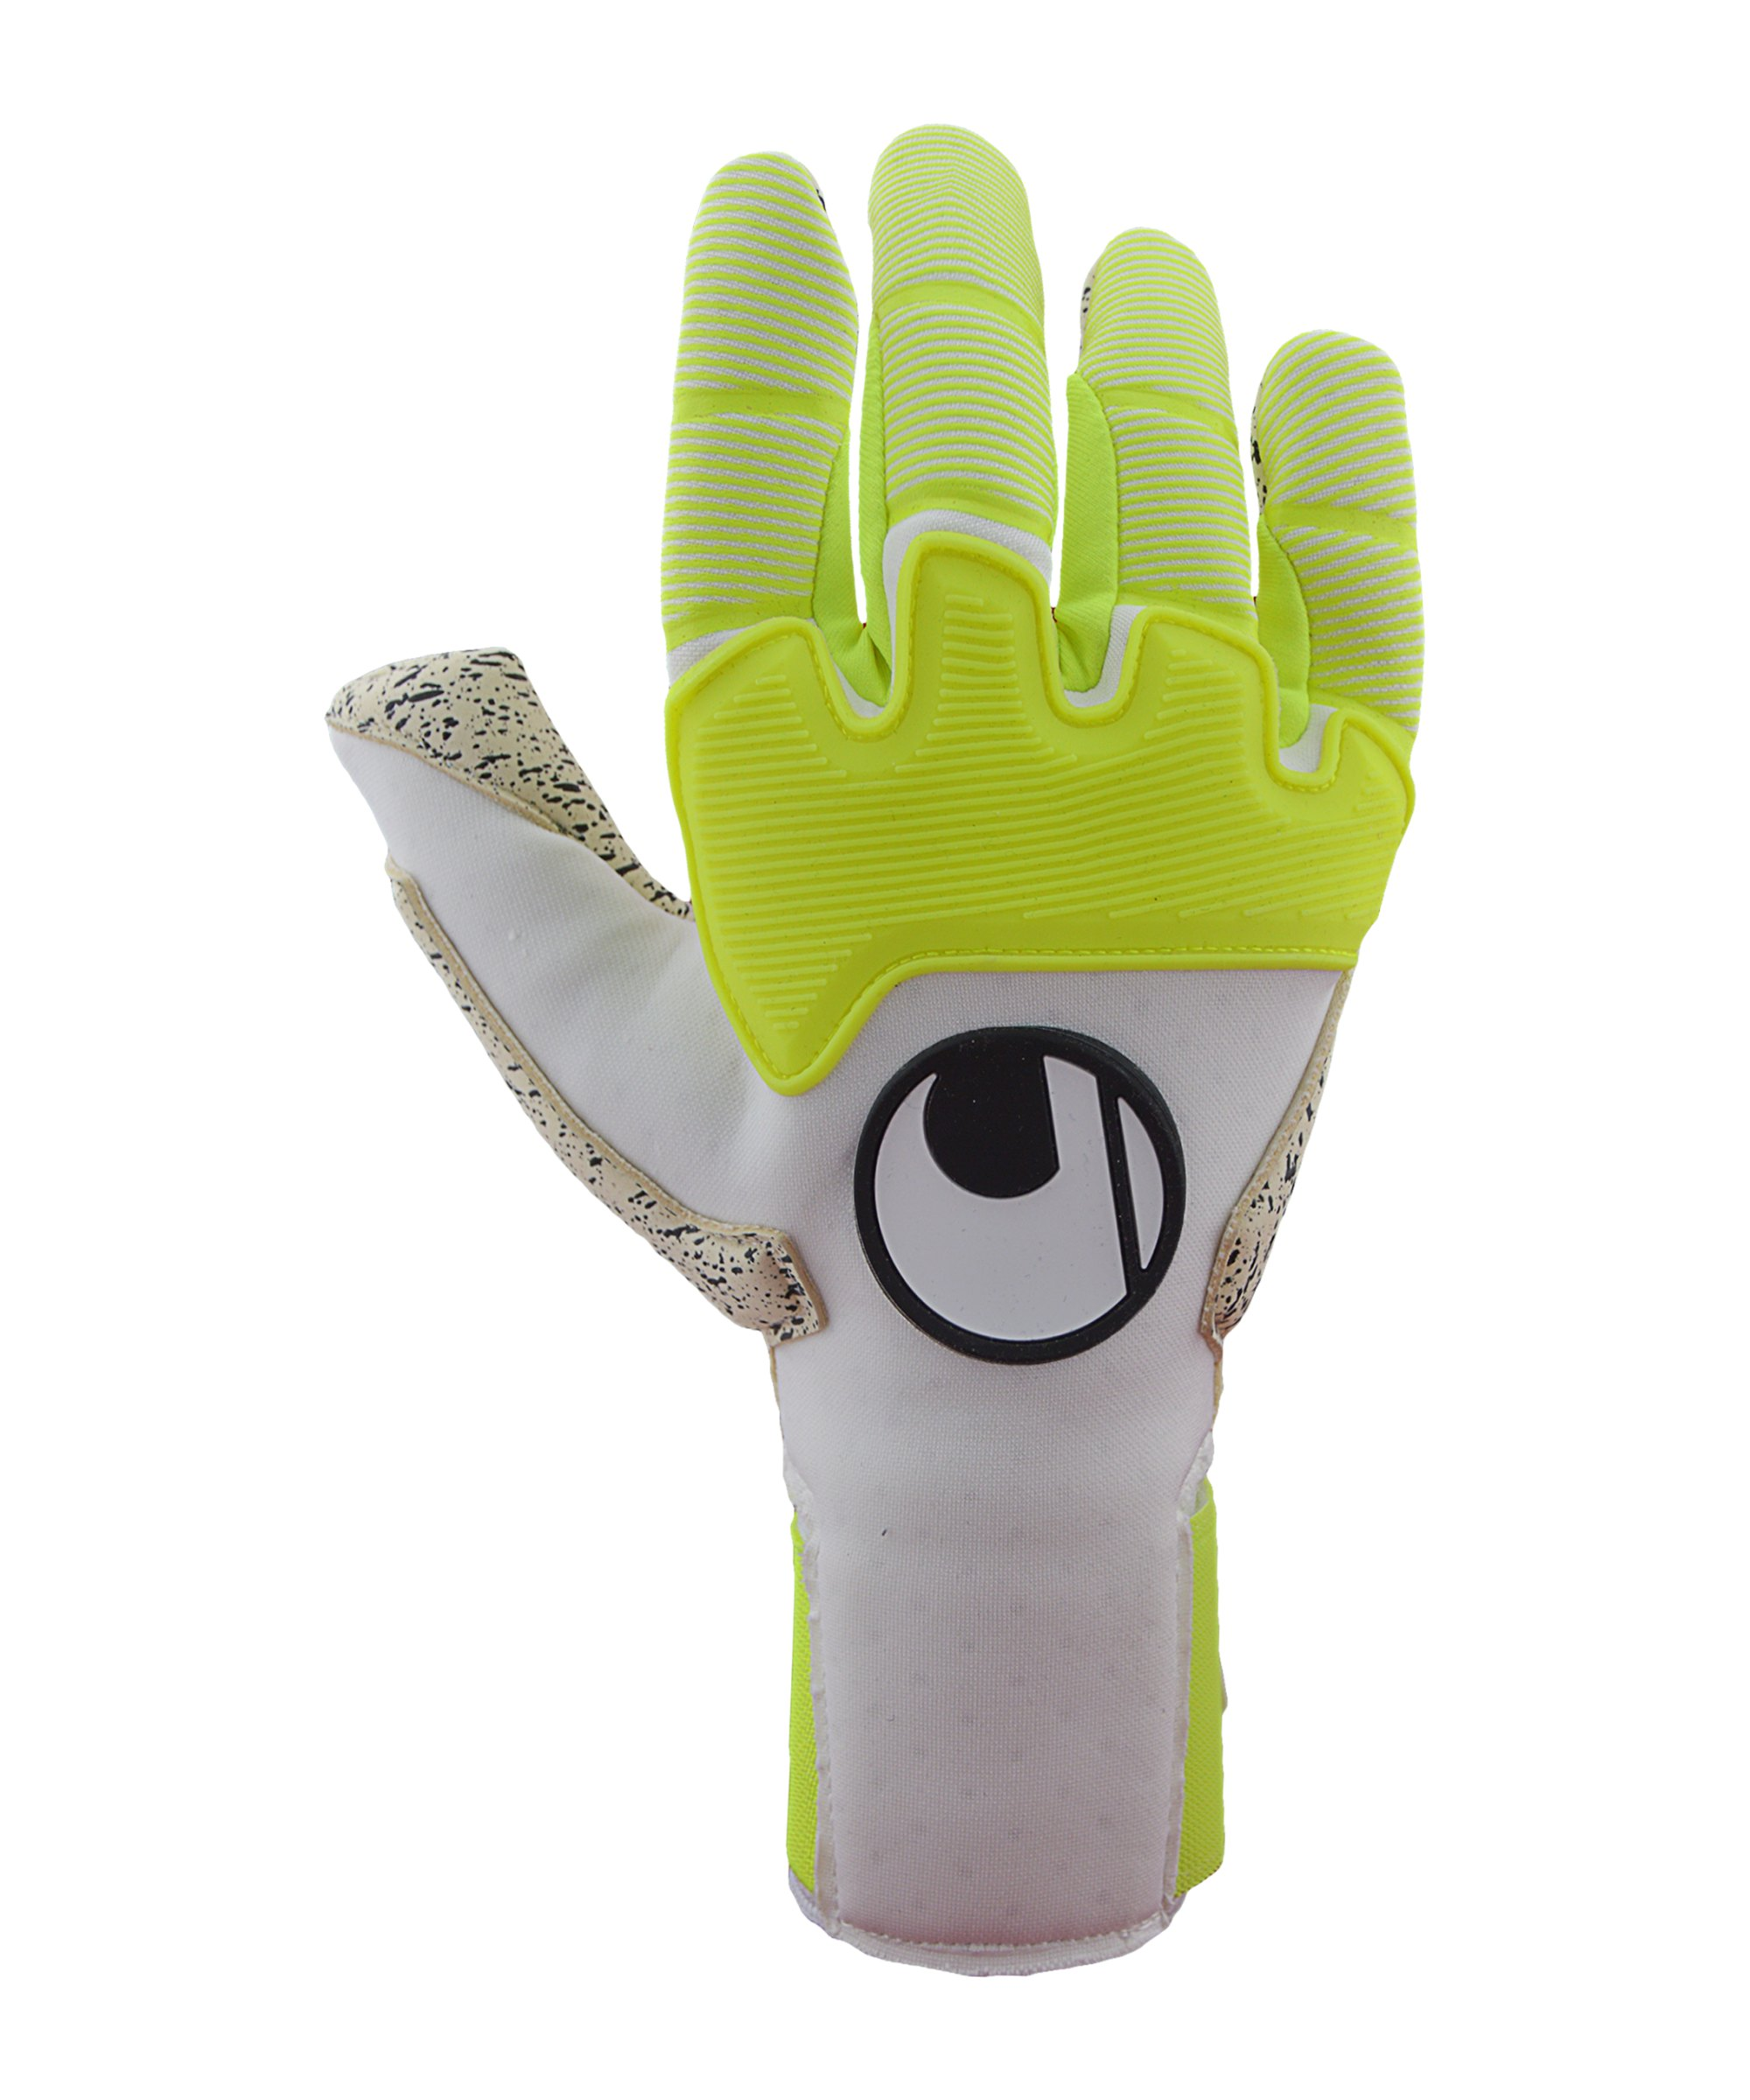 Uhlsport Pure Alliance SG+ Reflex TW-Handschuh F01 - weiss